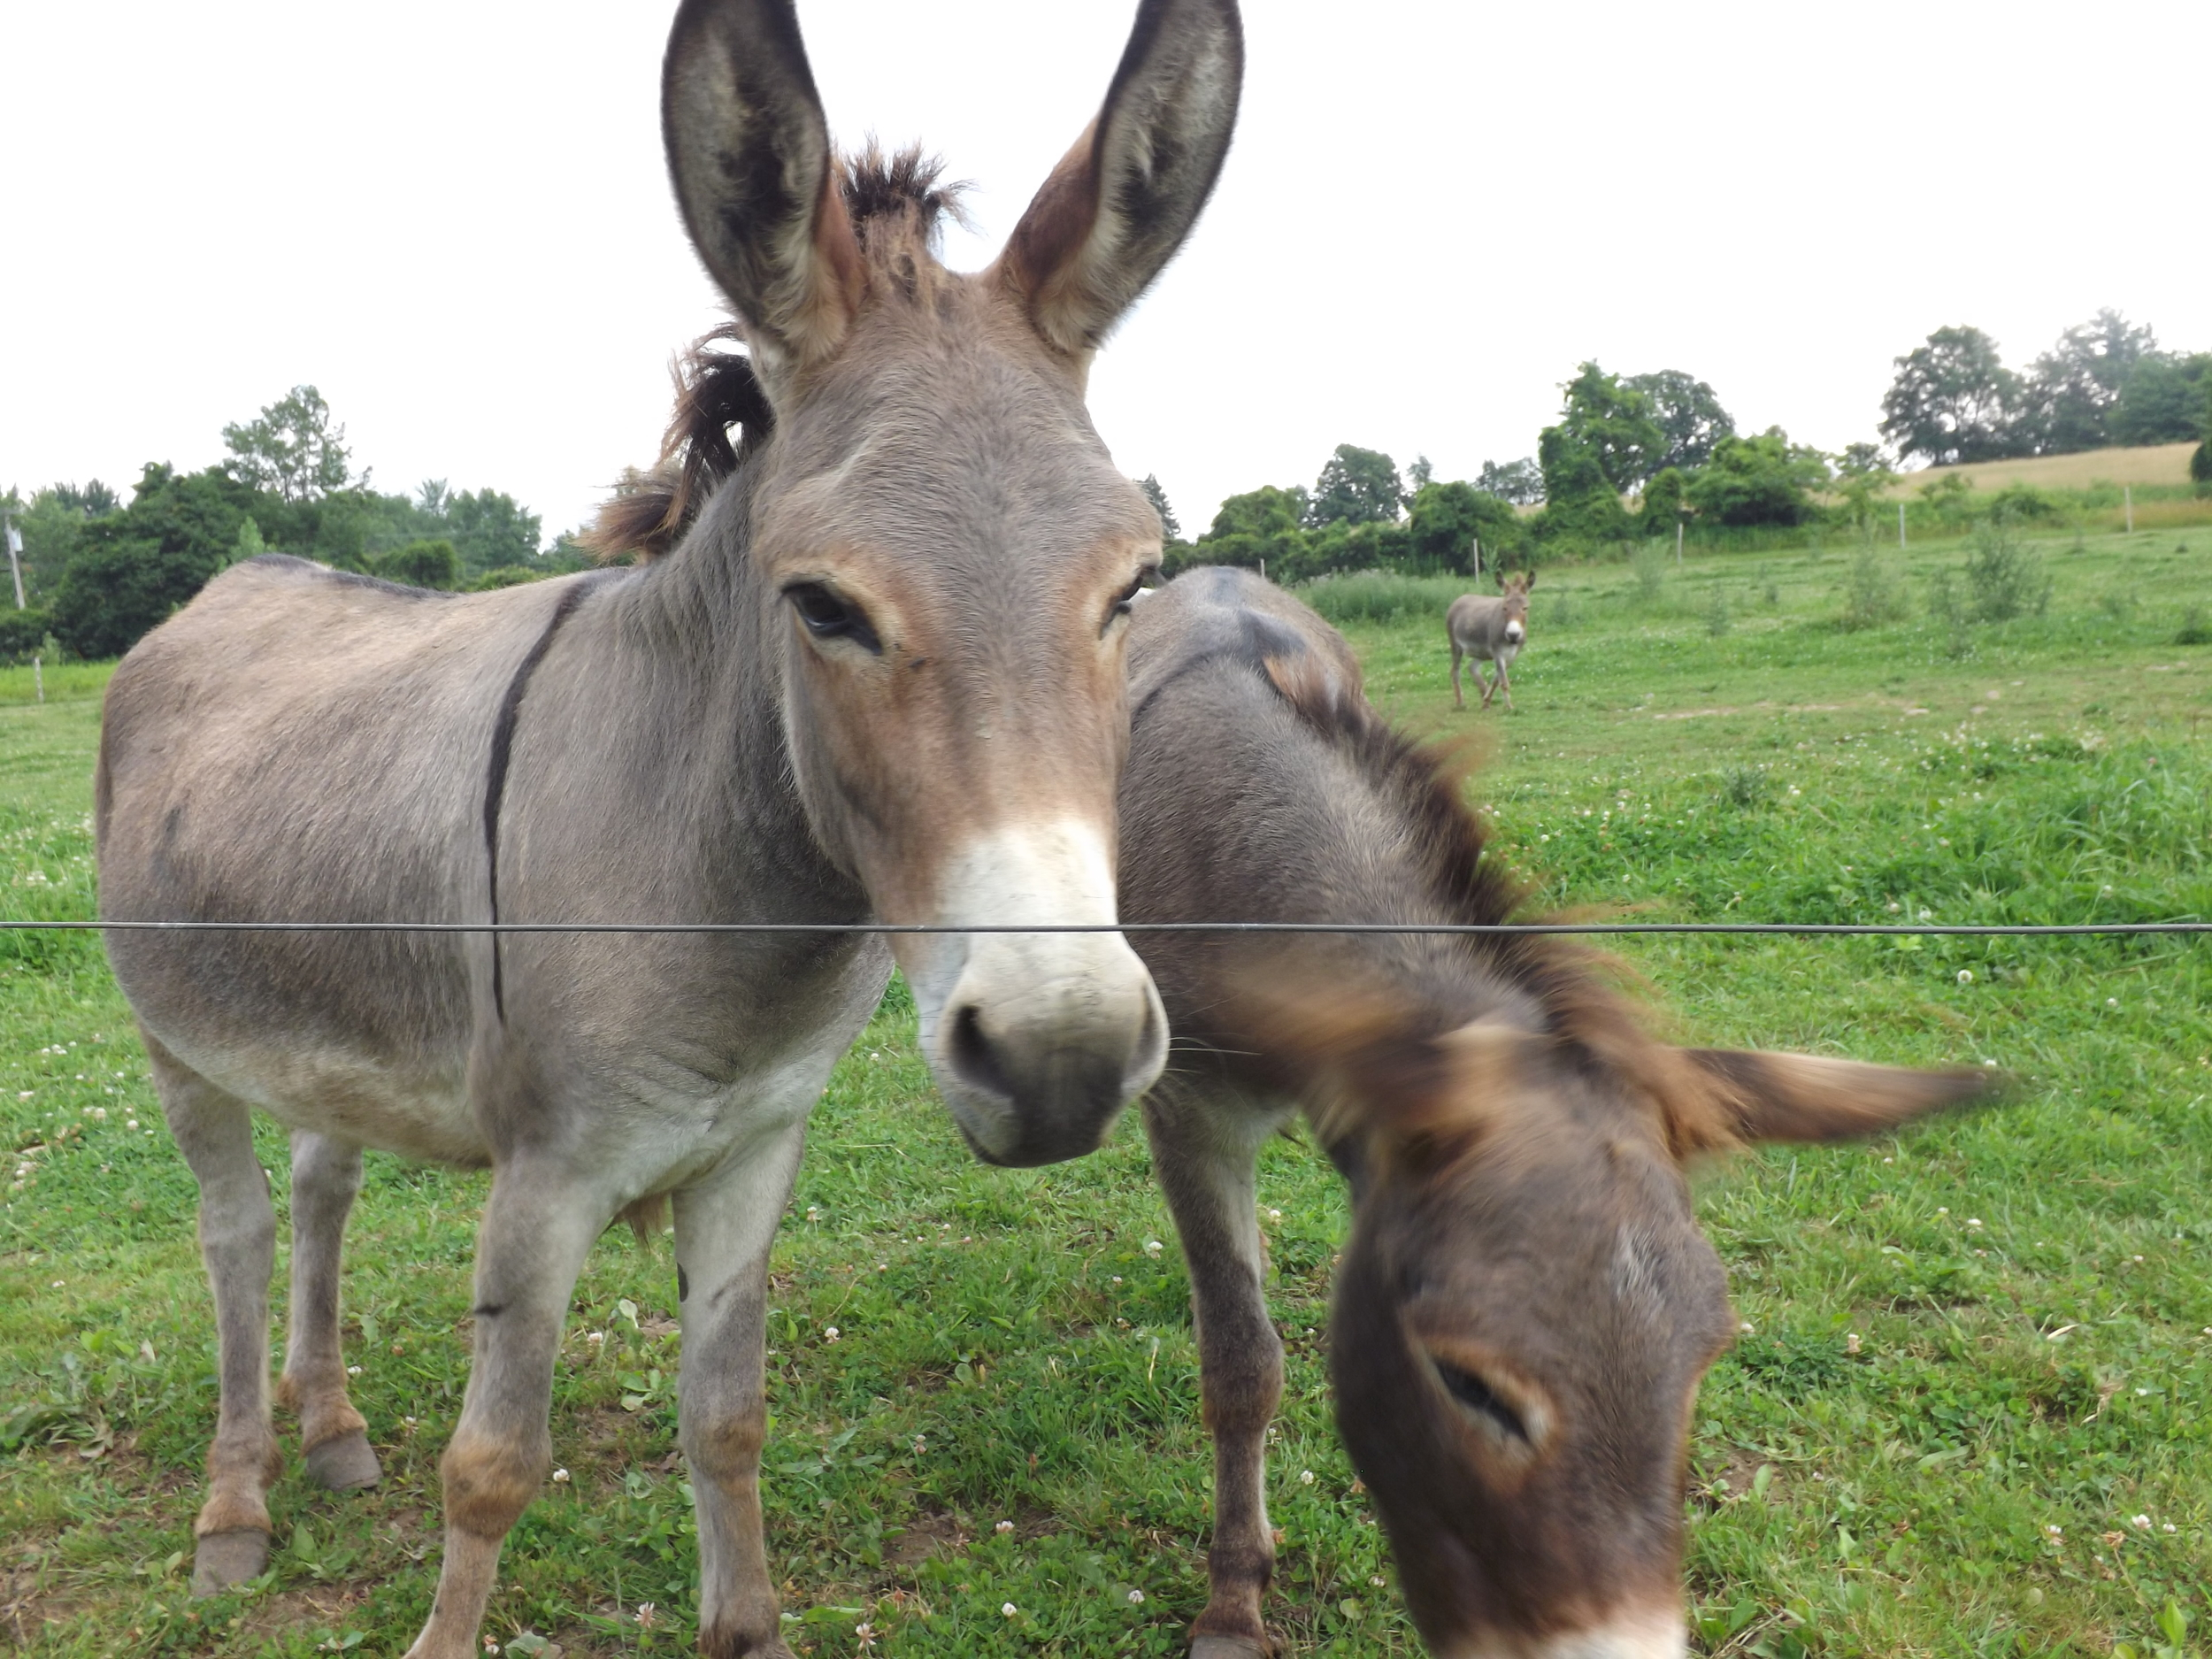 Happy birthday Broc!!!!! The donkeys are looking so nice lately as there winter coats have finally shedded out.